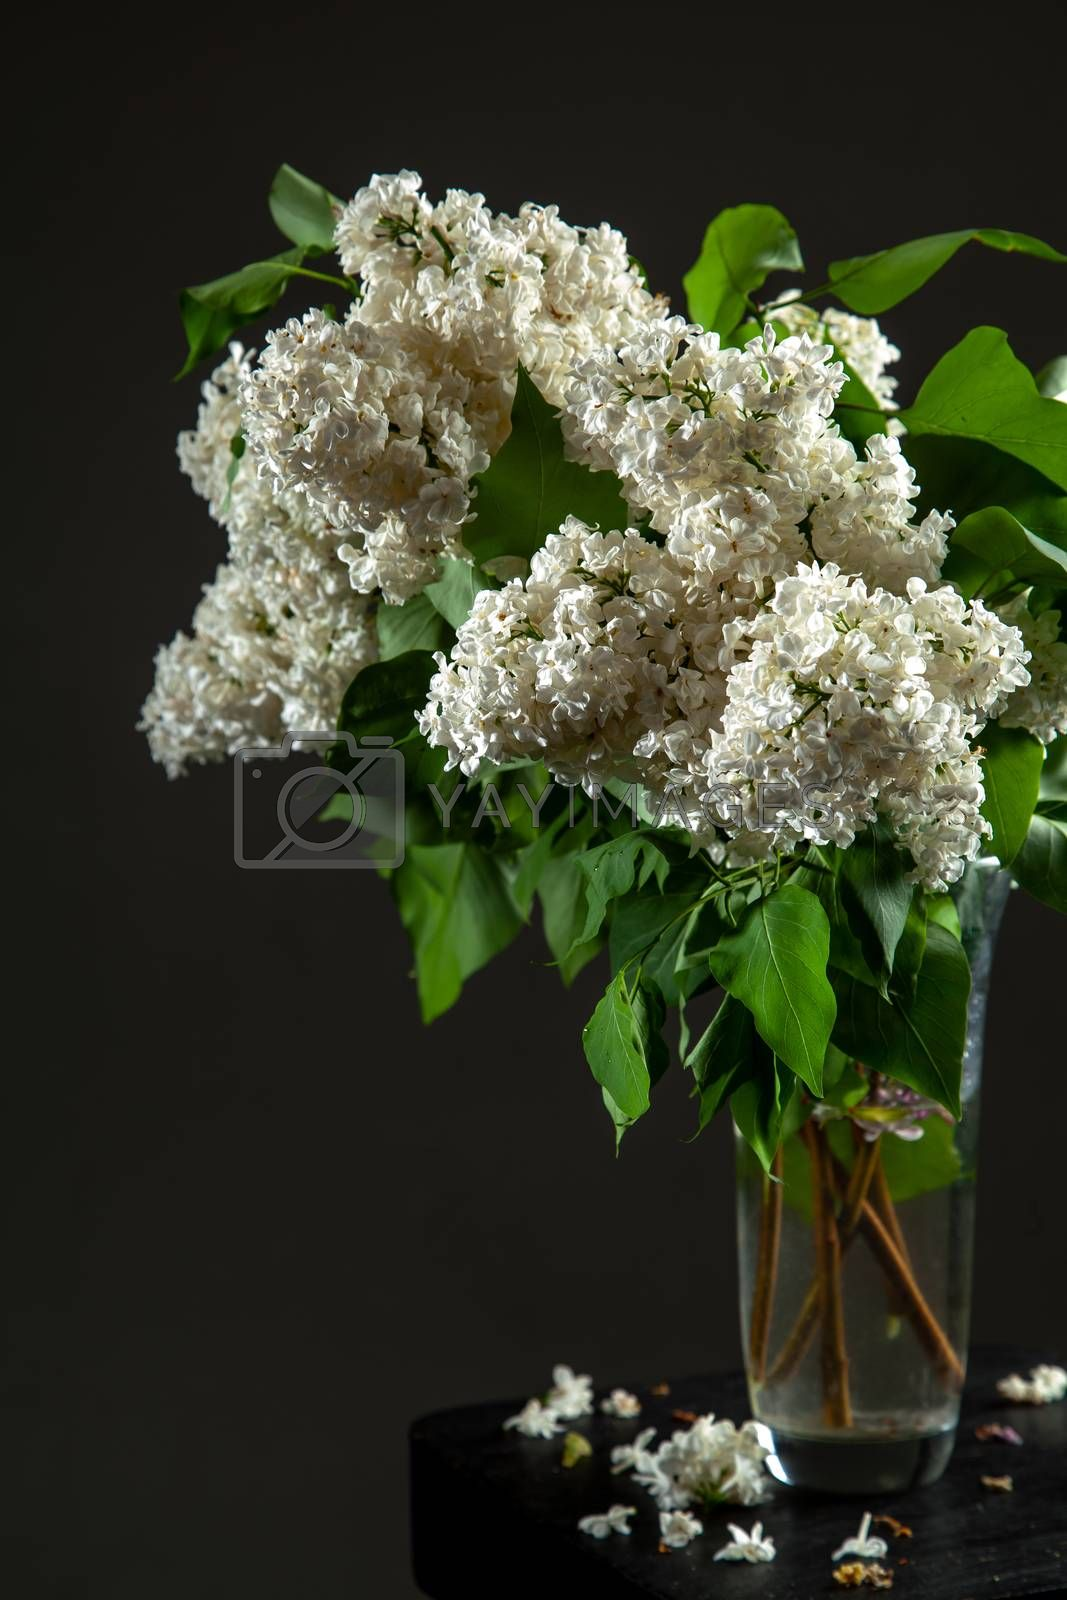 White branches of lilac in glass vase on dark background. Spring branch of blooming lilac on the black table with dark background. Fallen lilac flowers on the table.